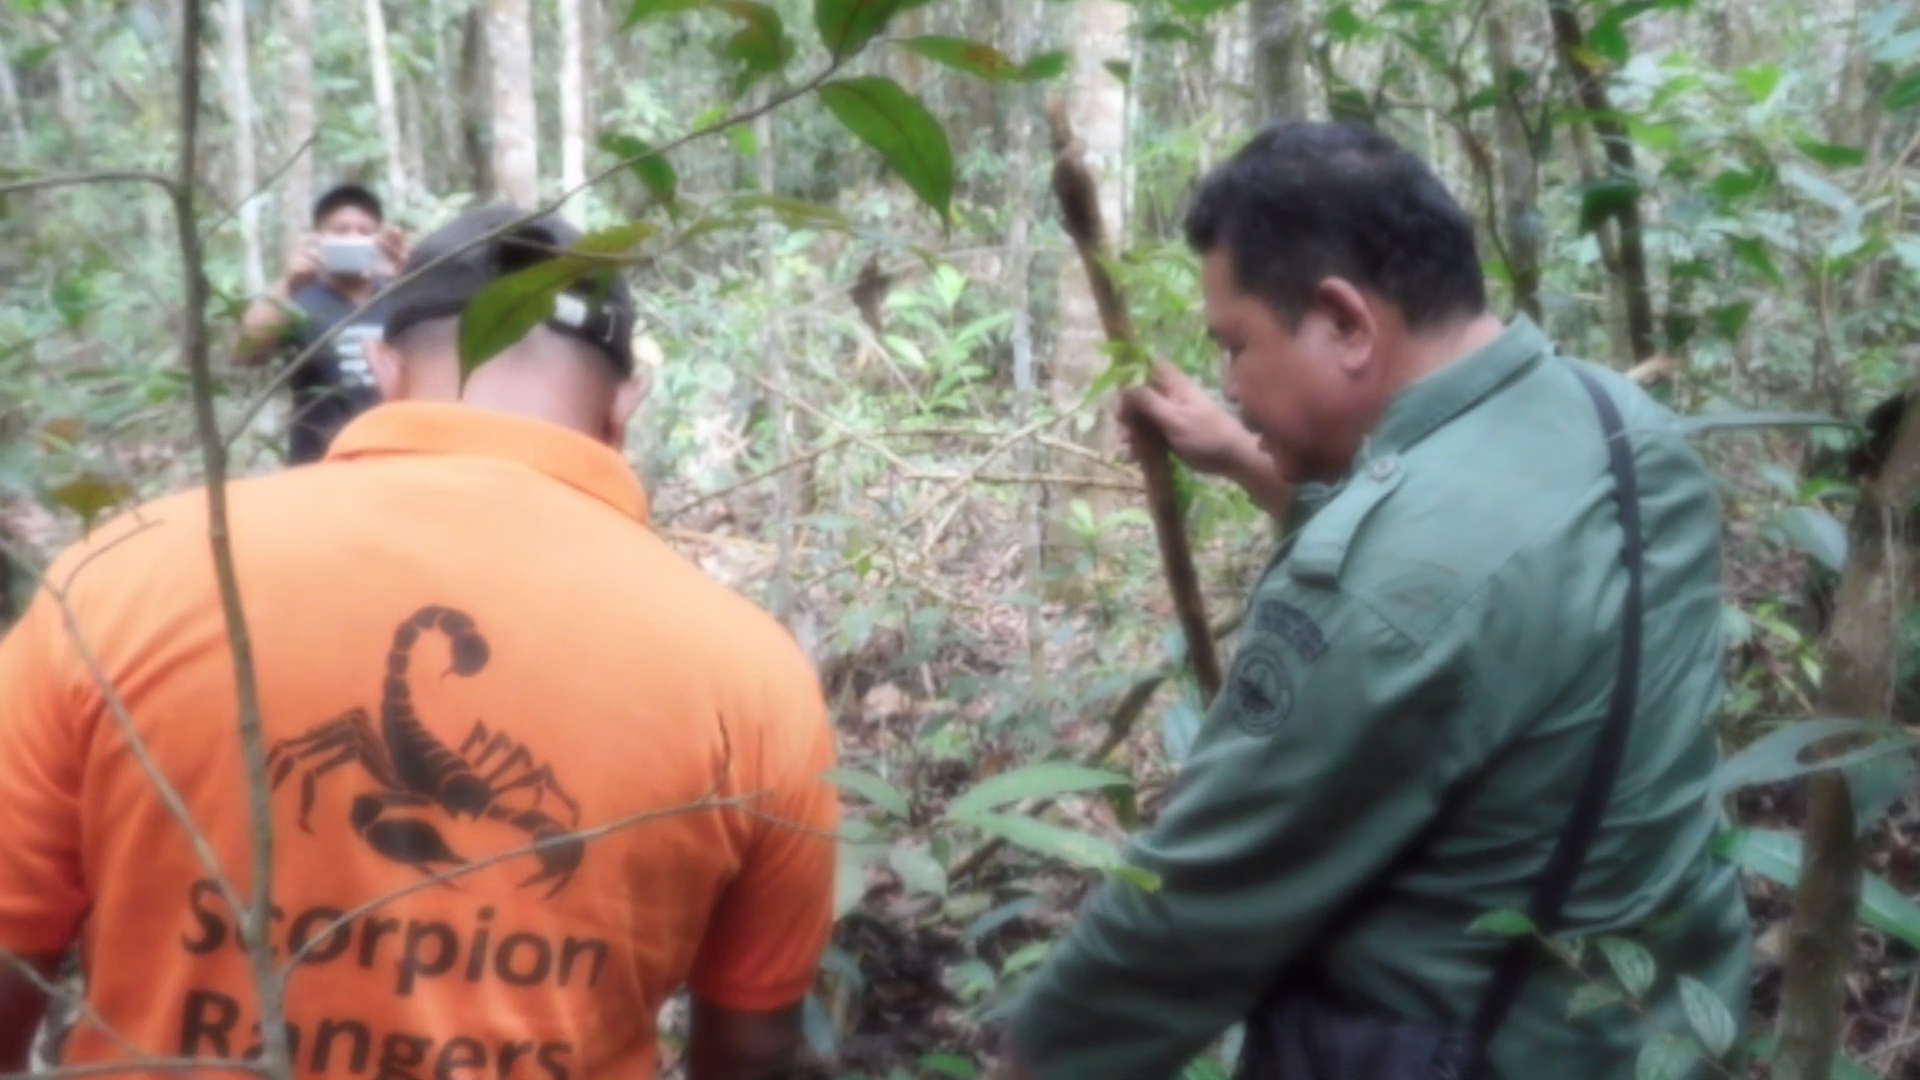 Joint patrol to prevent illegal poaching at Sampean Village (December 30, 2019)